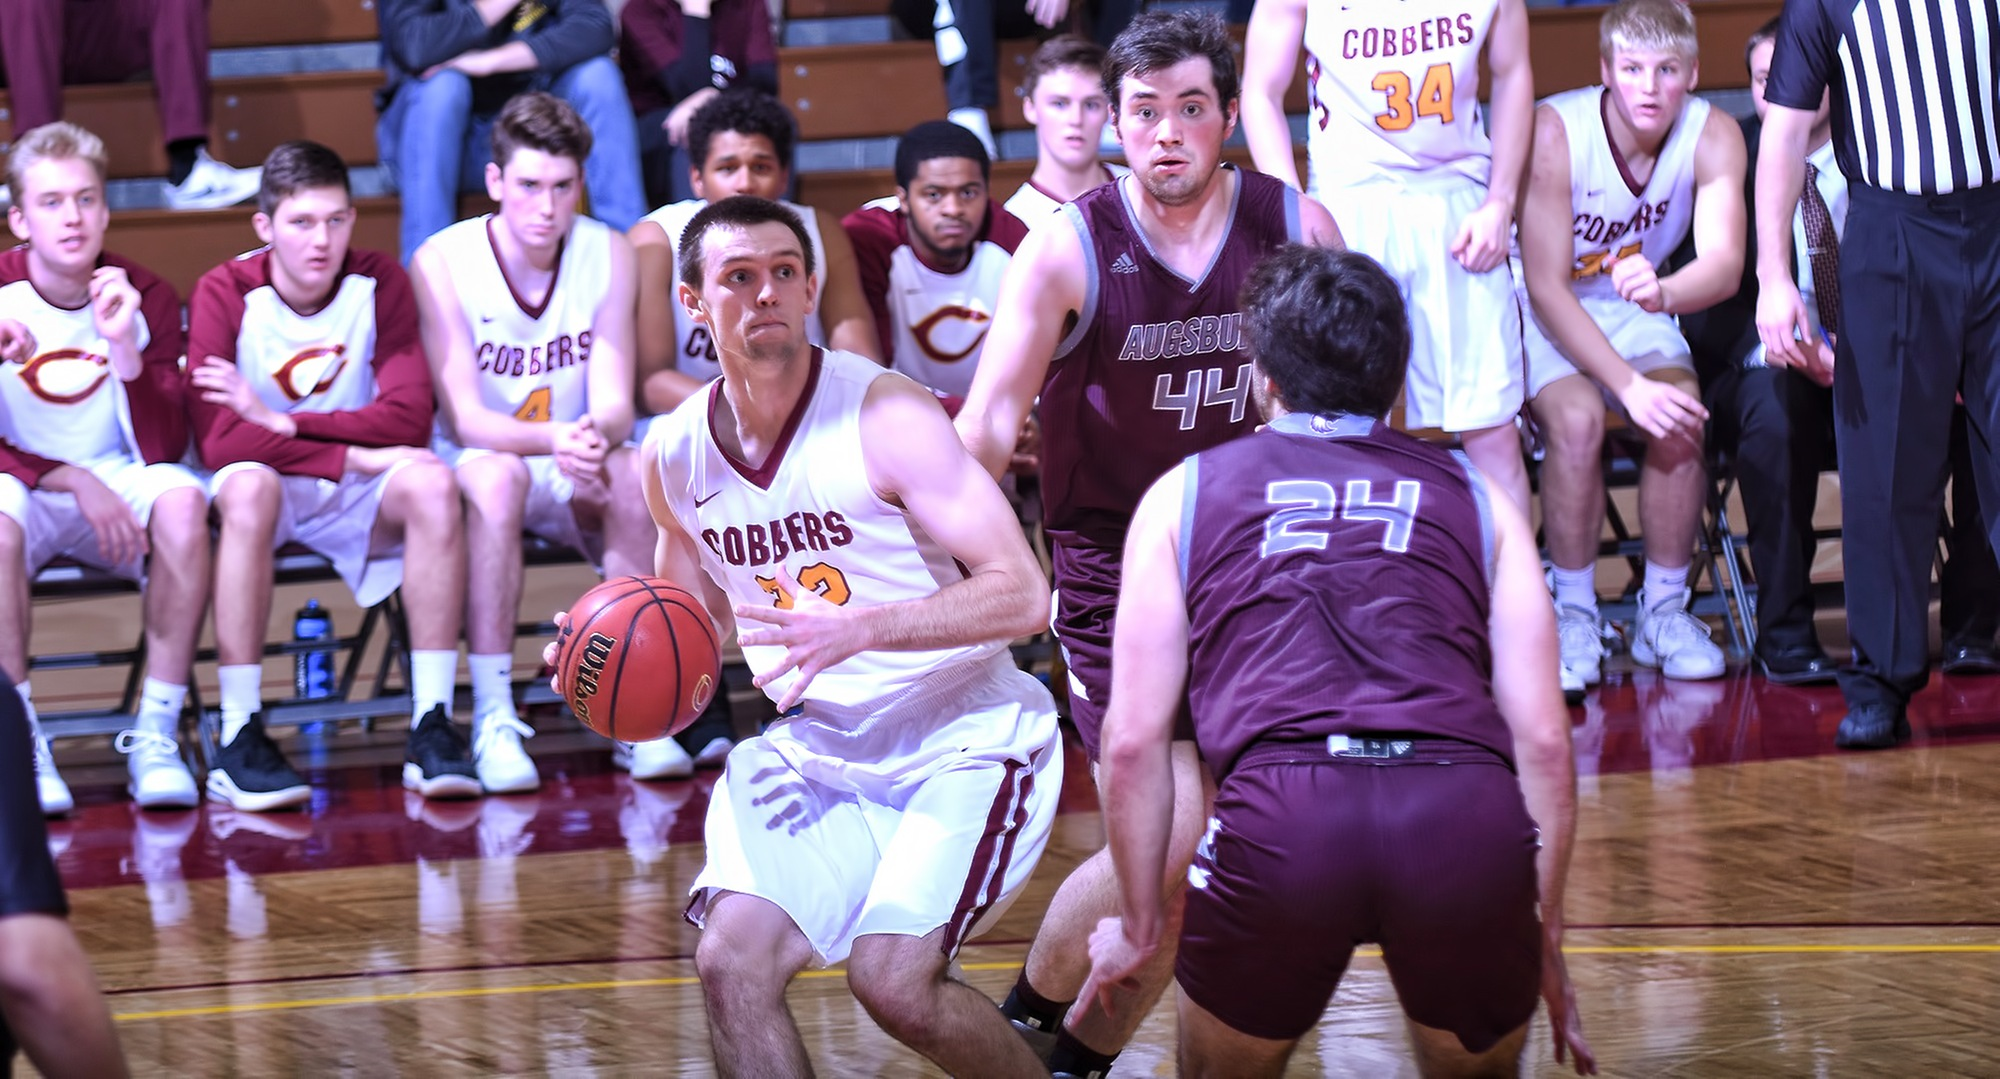 Junior Jacob Fredrickson had a career-high 16 points in the Cobbers' game at Augsburg.